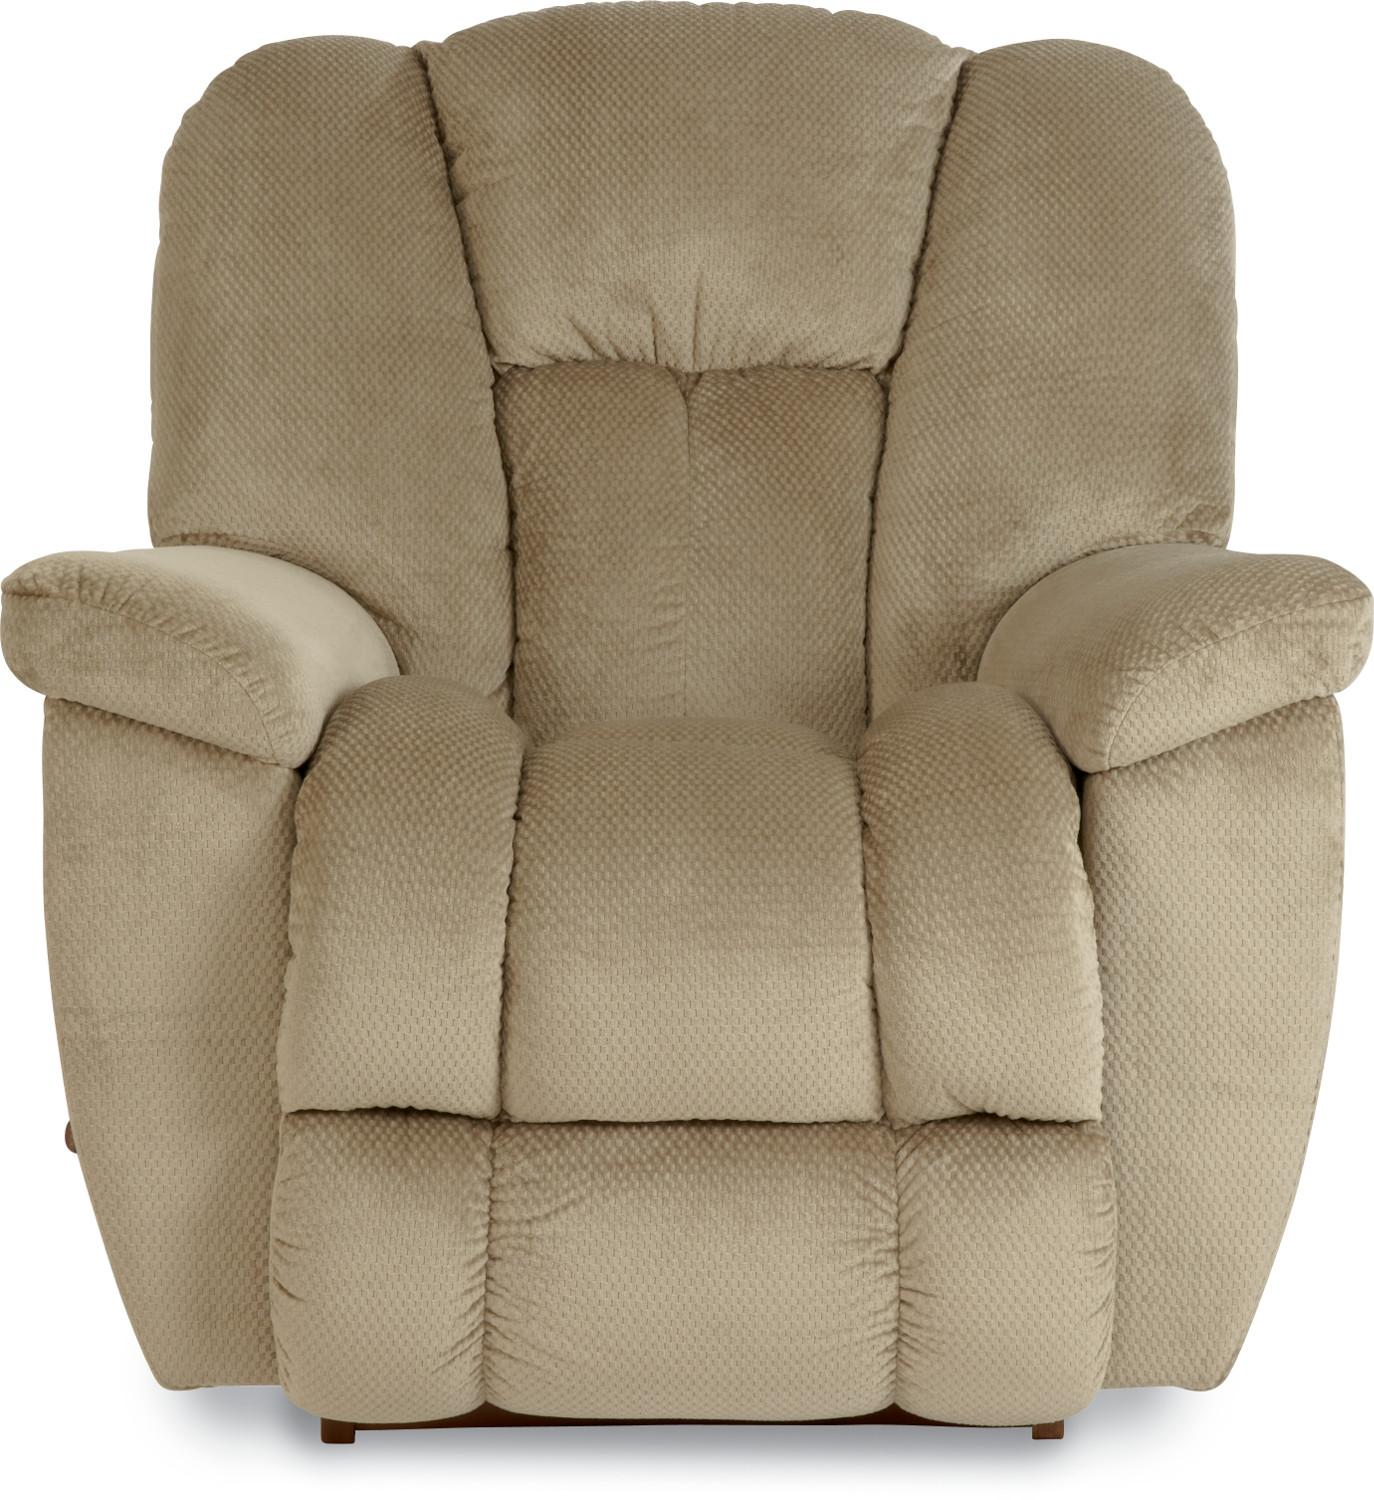 Maverick Reclina-Way Recliner by La-Z-Boy at Reid's Furniture